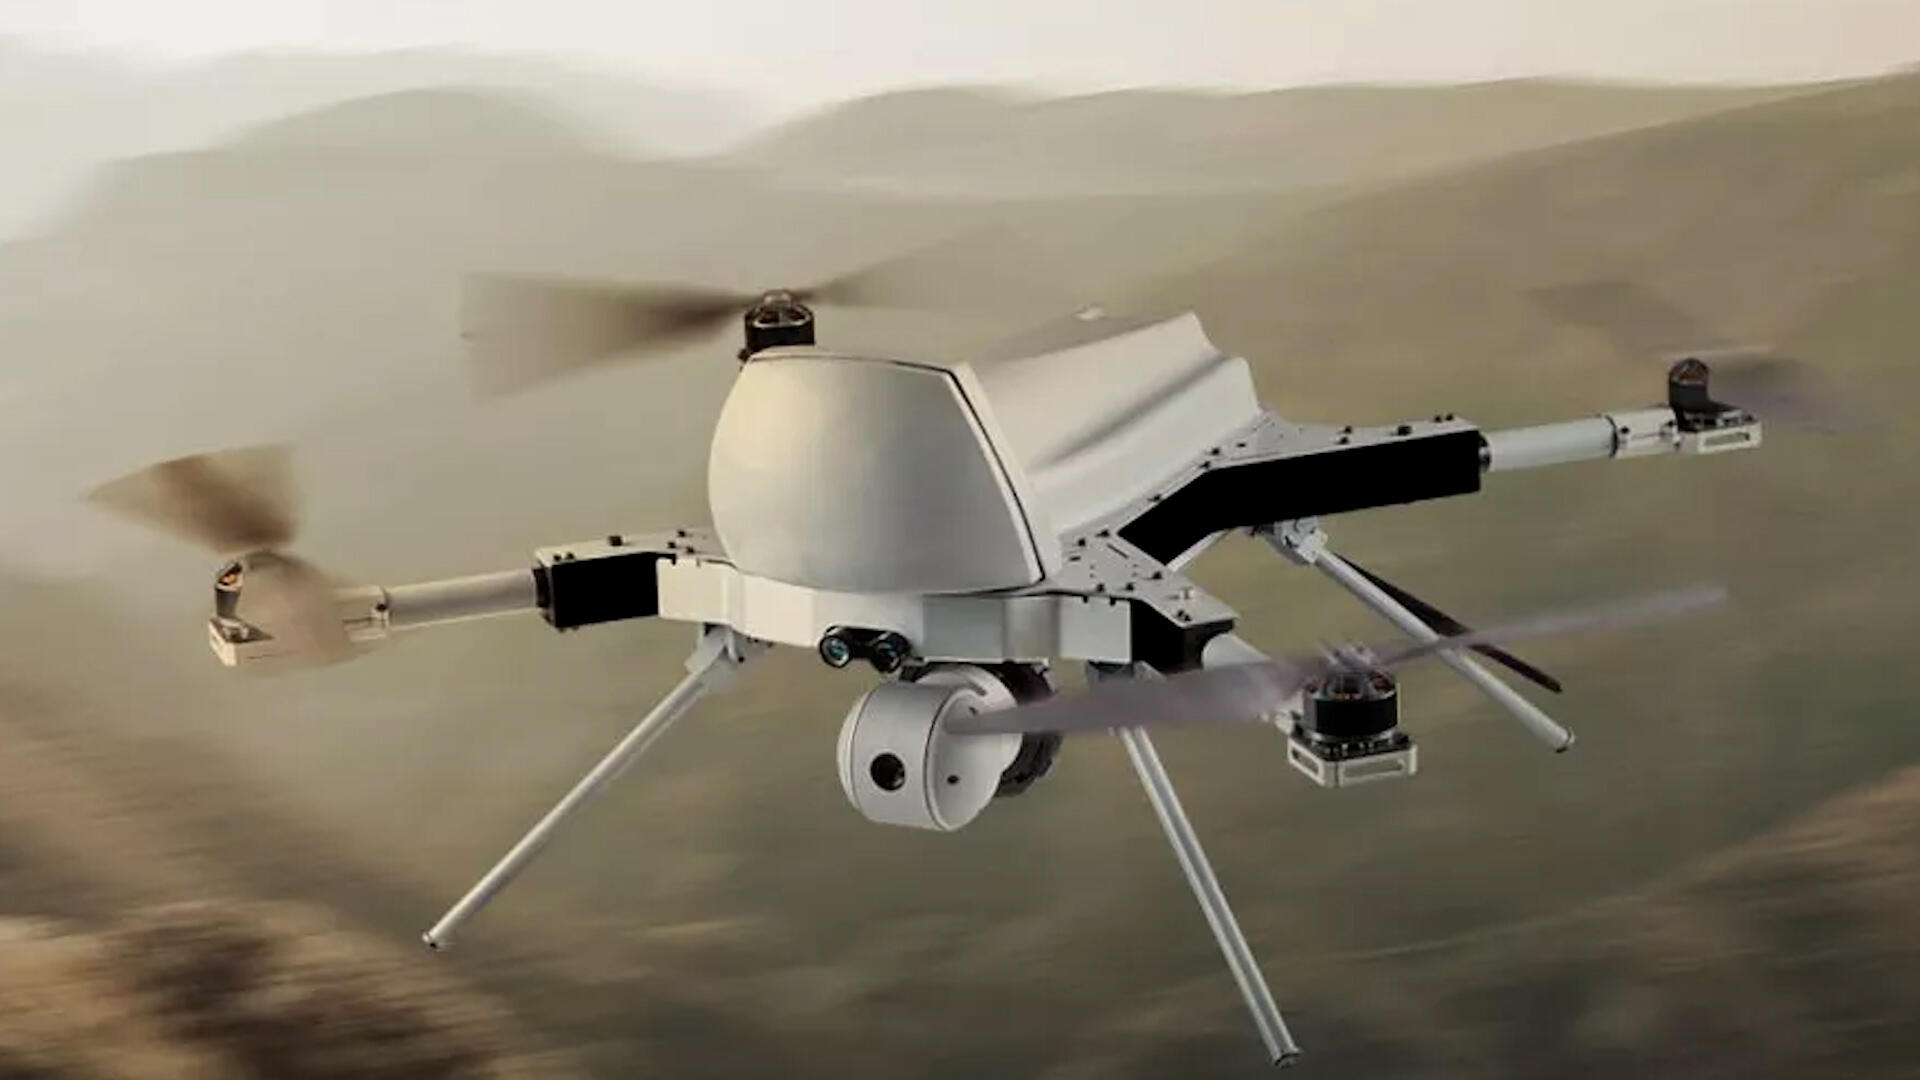 Video: UN Report: Drone attacked soldiers on its own